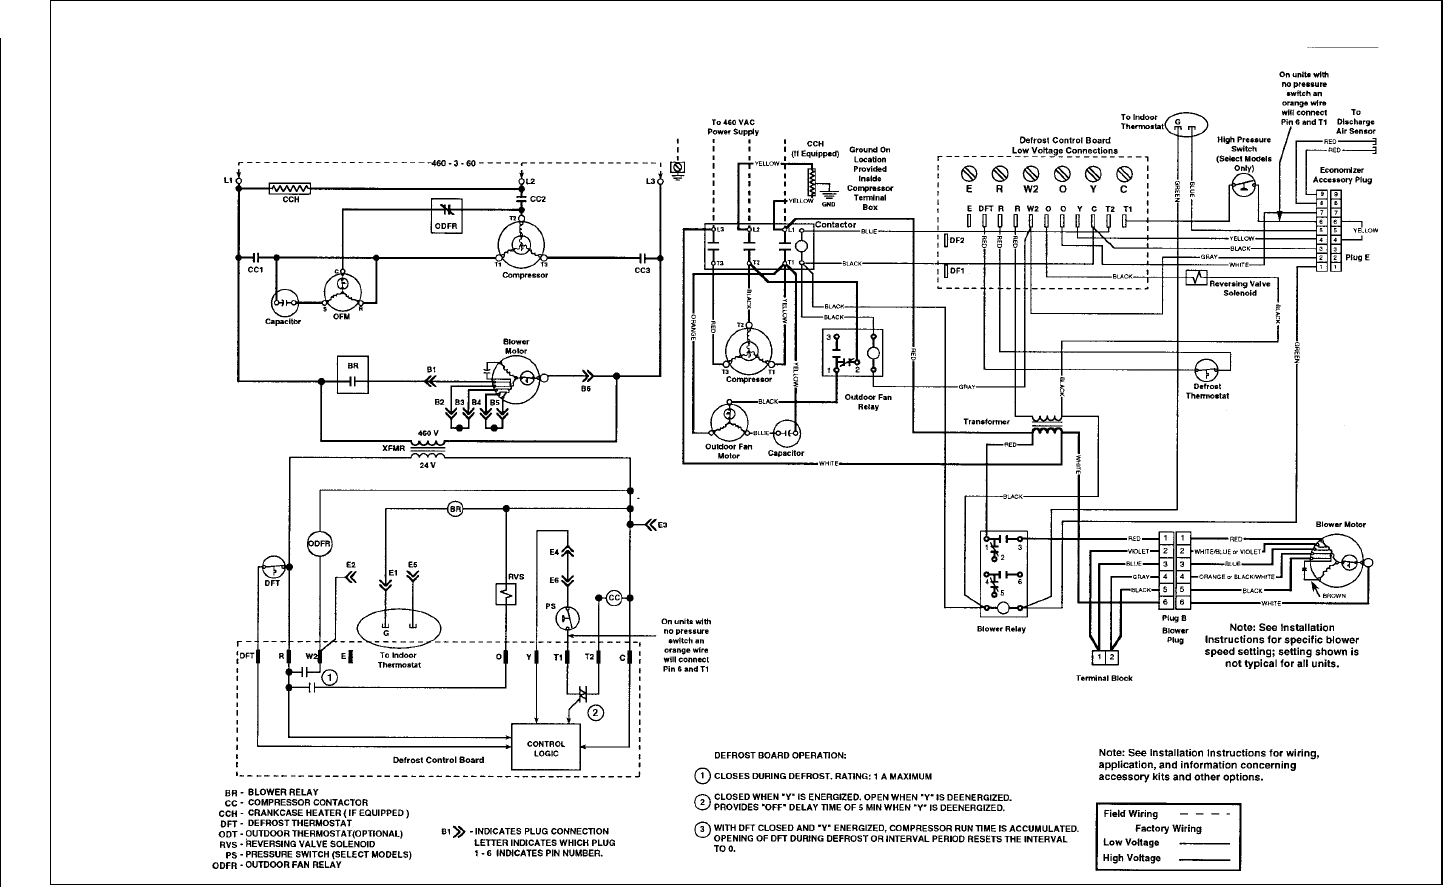 Ge Water Wiring Diagram as well Diagram Further Whirlpool Refrigerator Wiring On Haier additionally Samsung Fridge Wiring Diagram moreover Wiring Diagram Intertherm Air Conditioner also Ge Refrigerator Schematic Electrical. on basic appliance wiring diagram